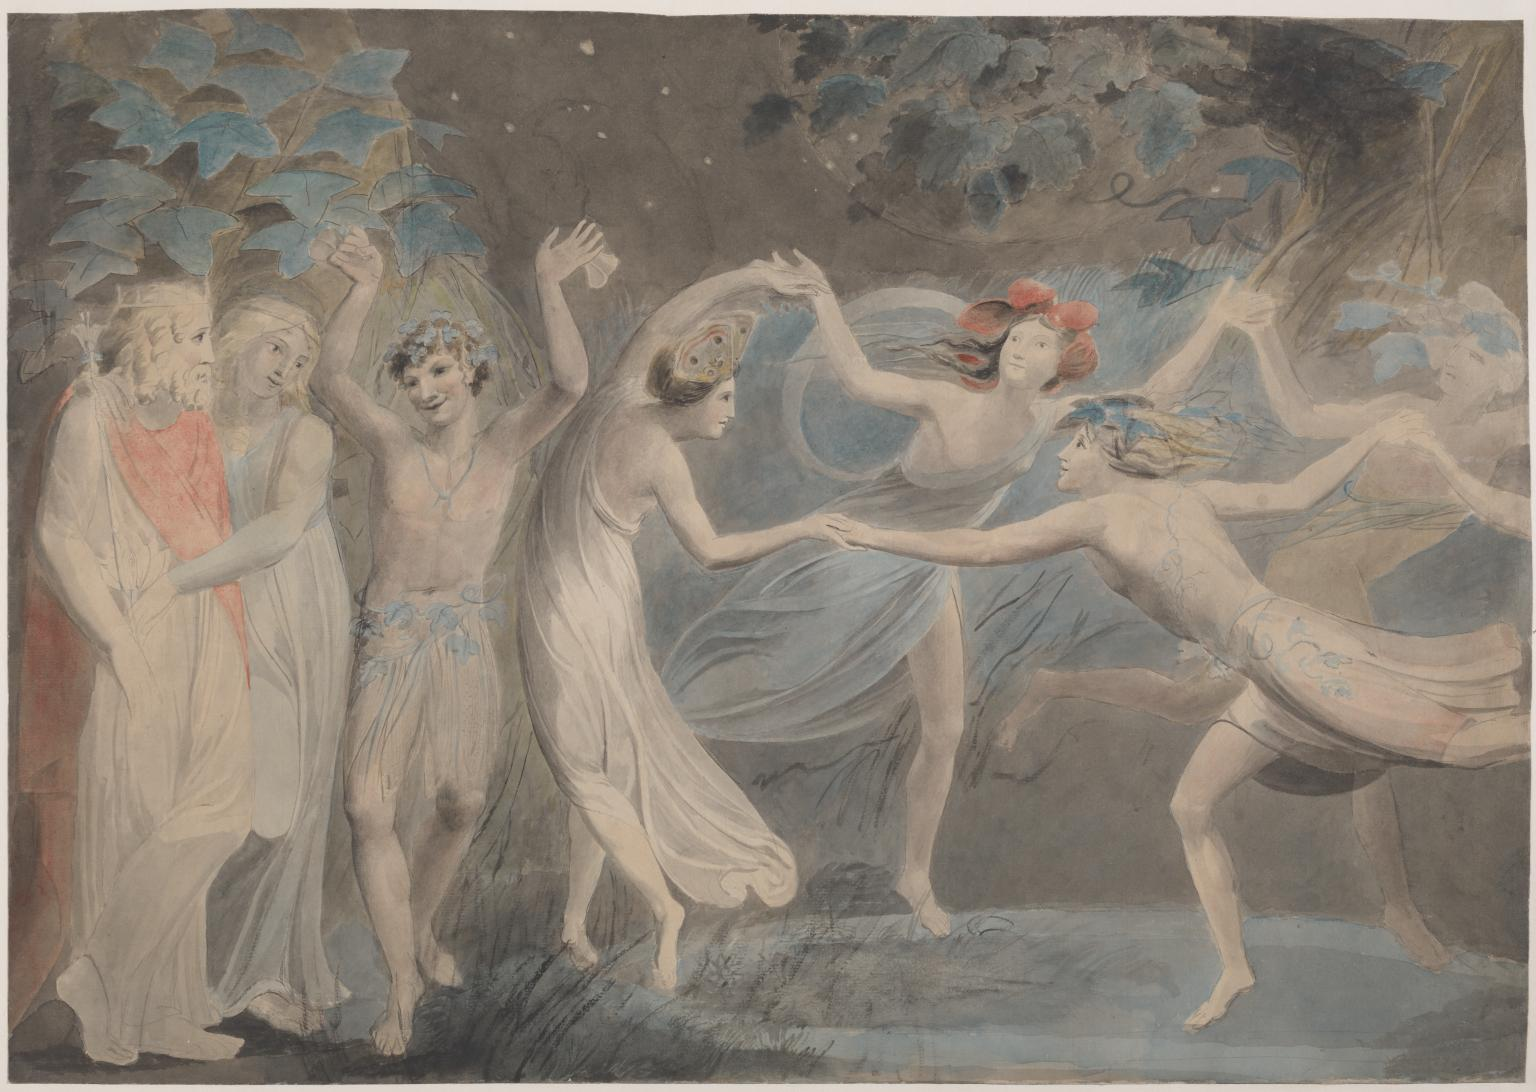 """Titania, Oberon and Puck,"" by William Blake, 1786, Collection of the Tate in London"